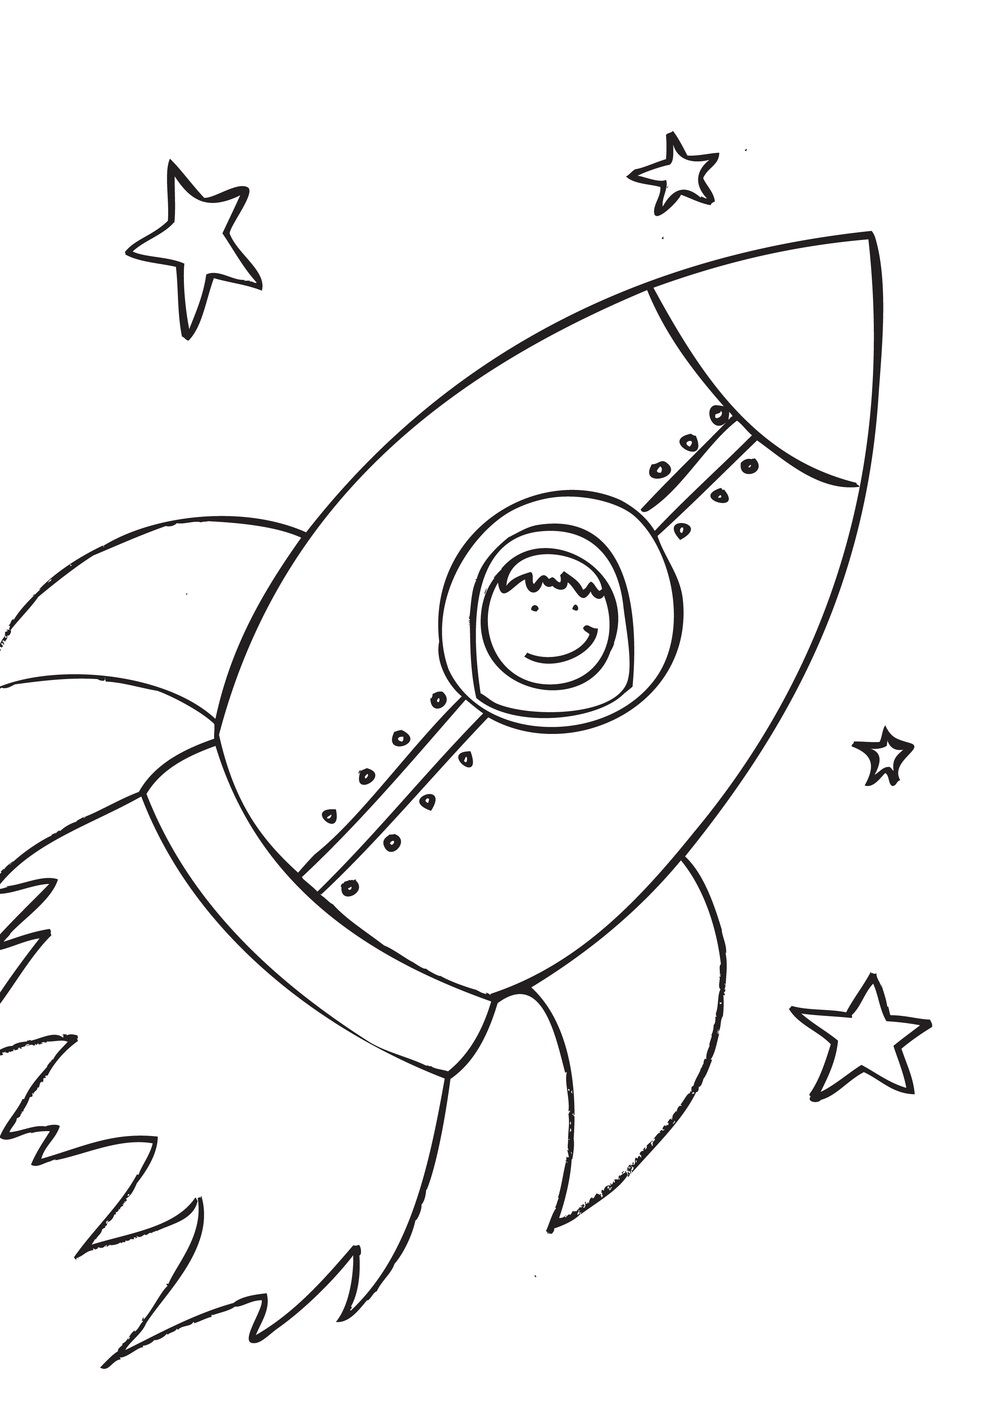 Preschool Rocket Coloring Pages